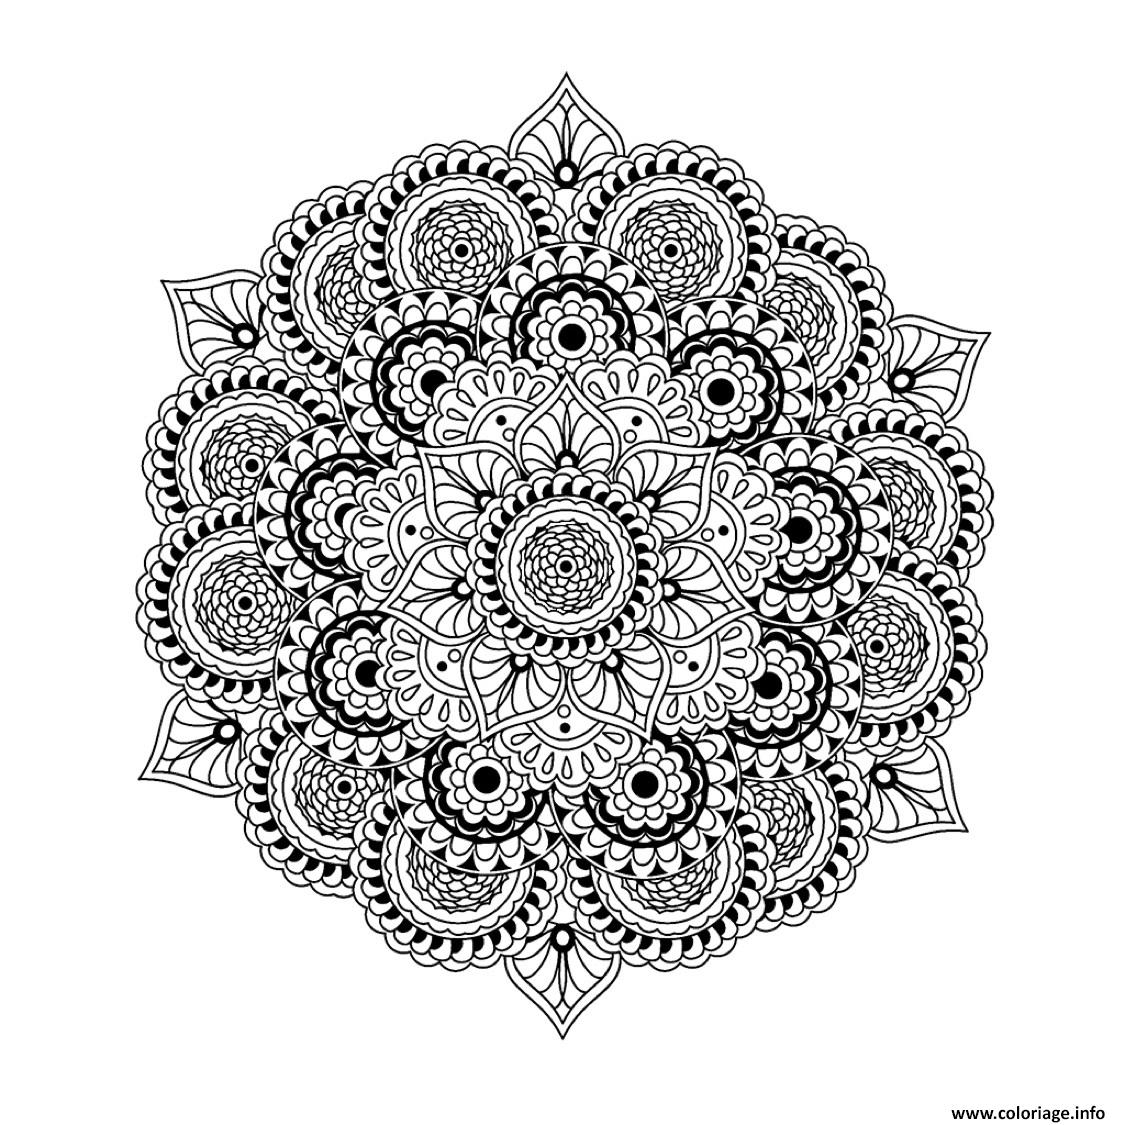 Coloriage mandala plexe difficile pour adulte art therapie